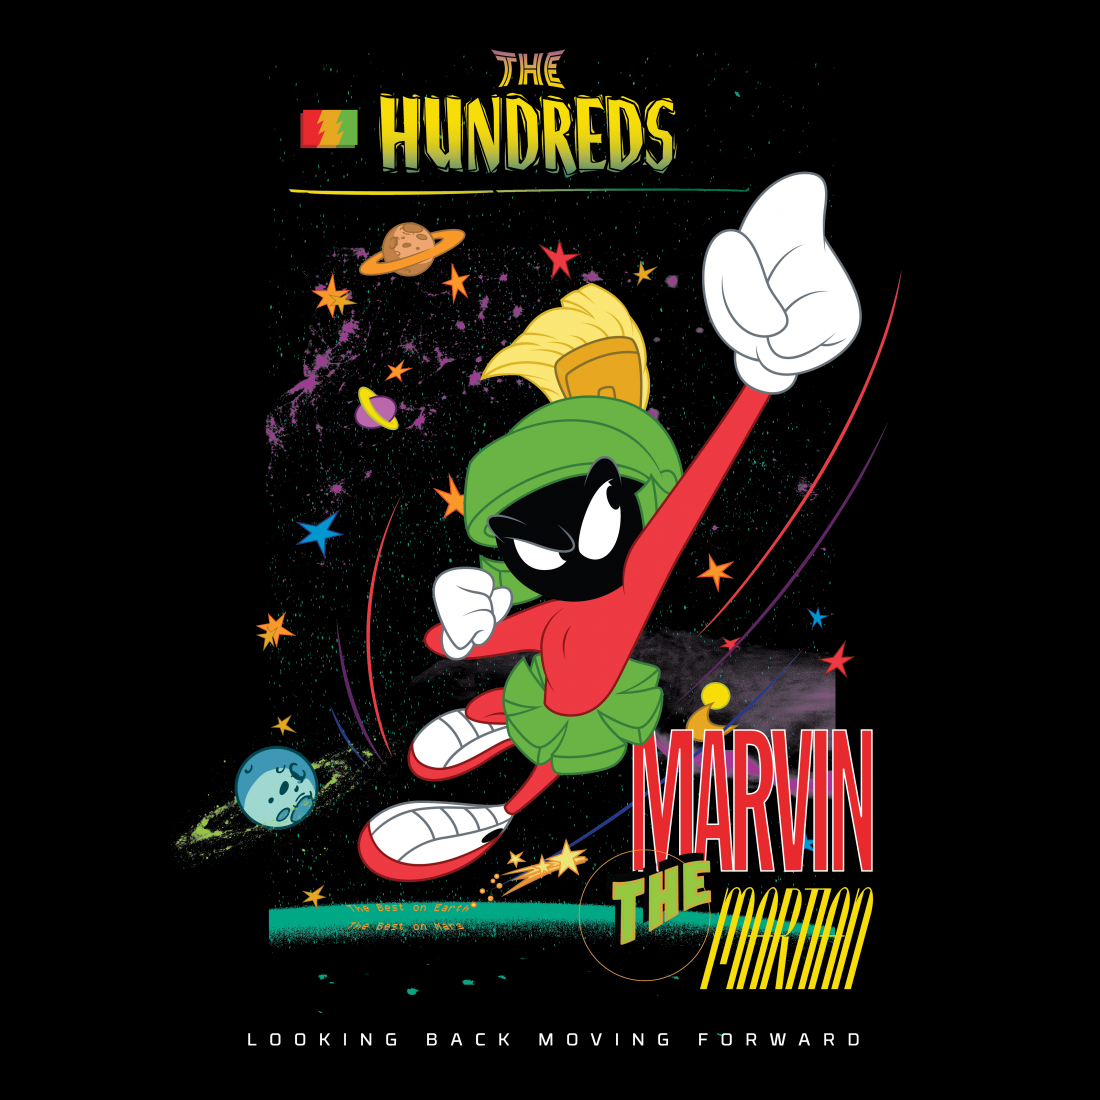 b85d06c7fc7 THE HUNDREDS X LOONEY TUNES: MARVIN THE MARTIAN DROPS ON THURSDAY, ...